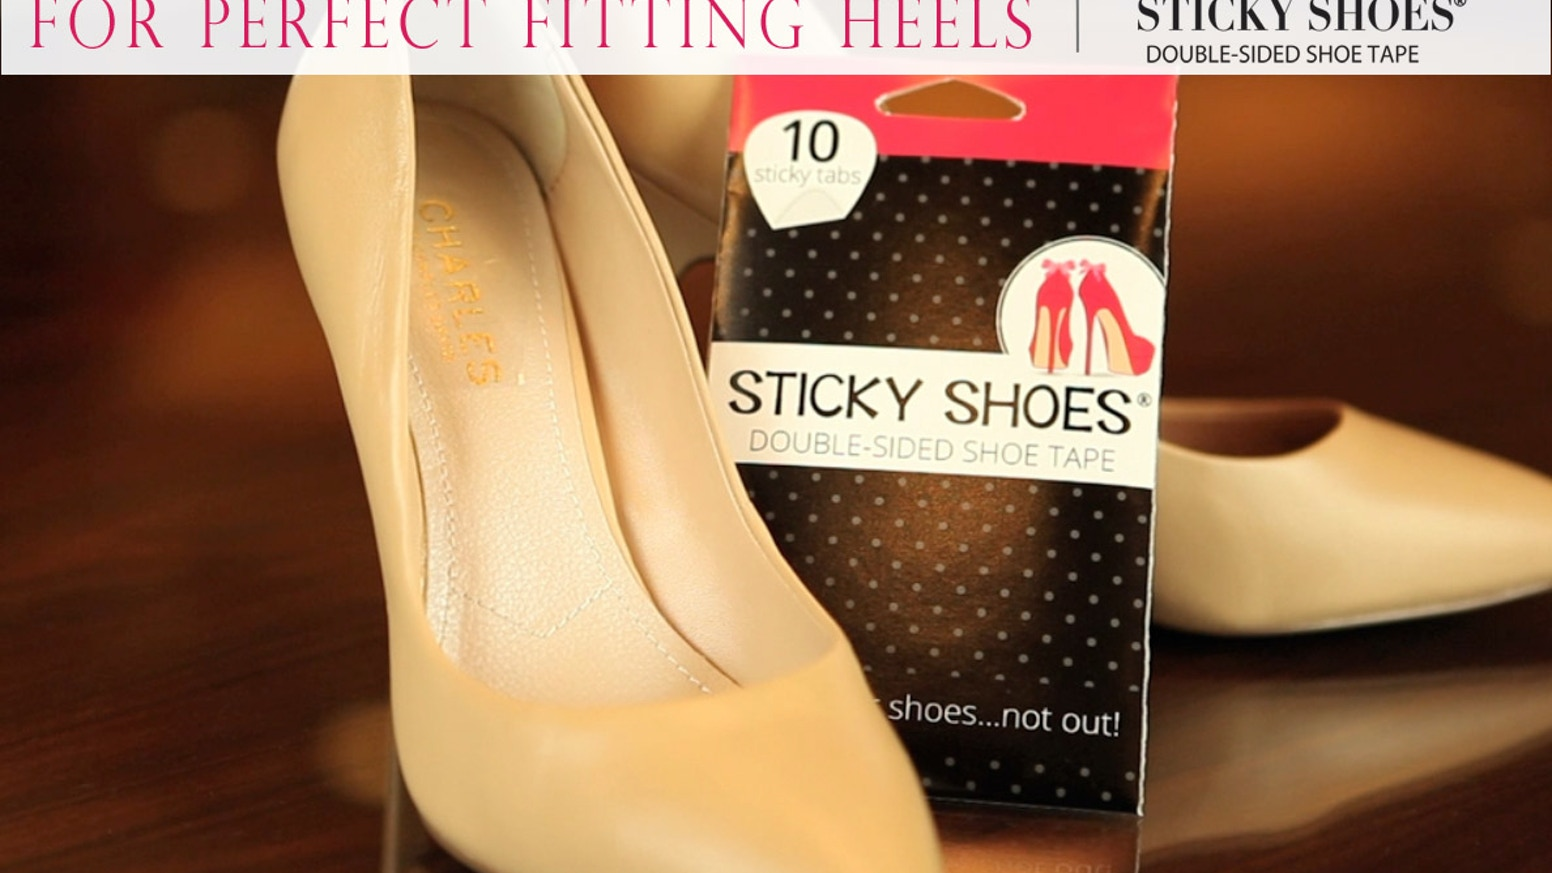 Enjoy the world's first tape designed to make every pair of heels the perfect fit. Never slip or slide out of your shoes again!